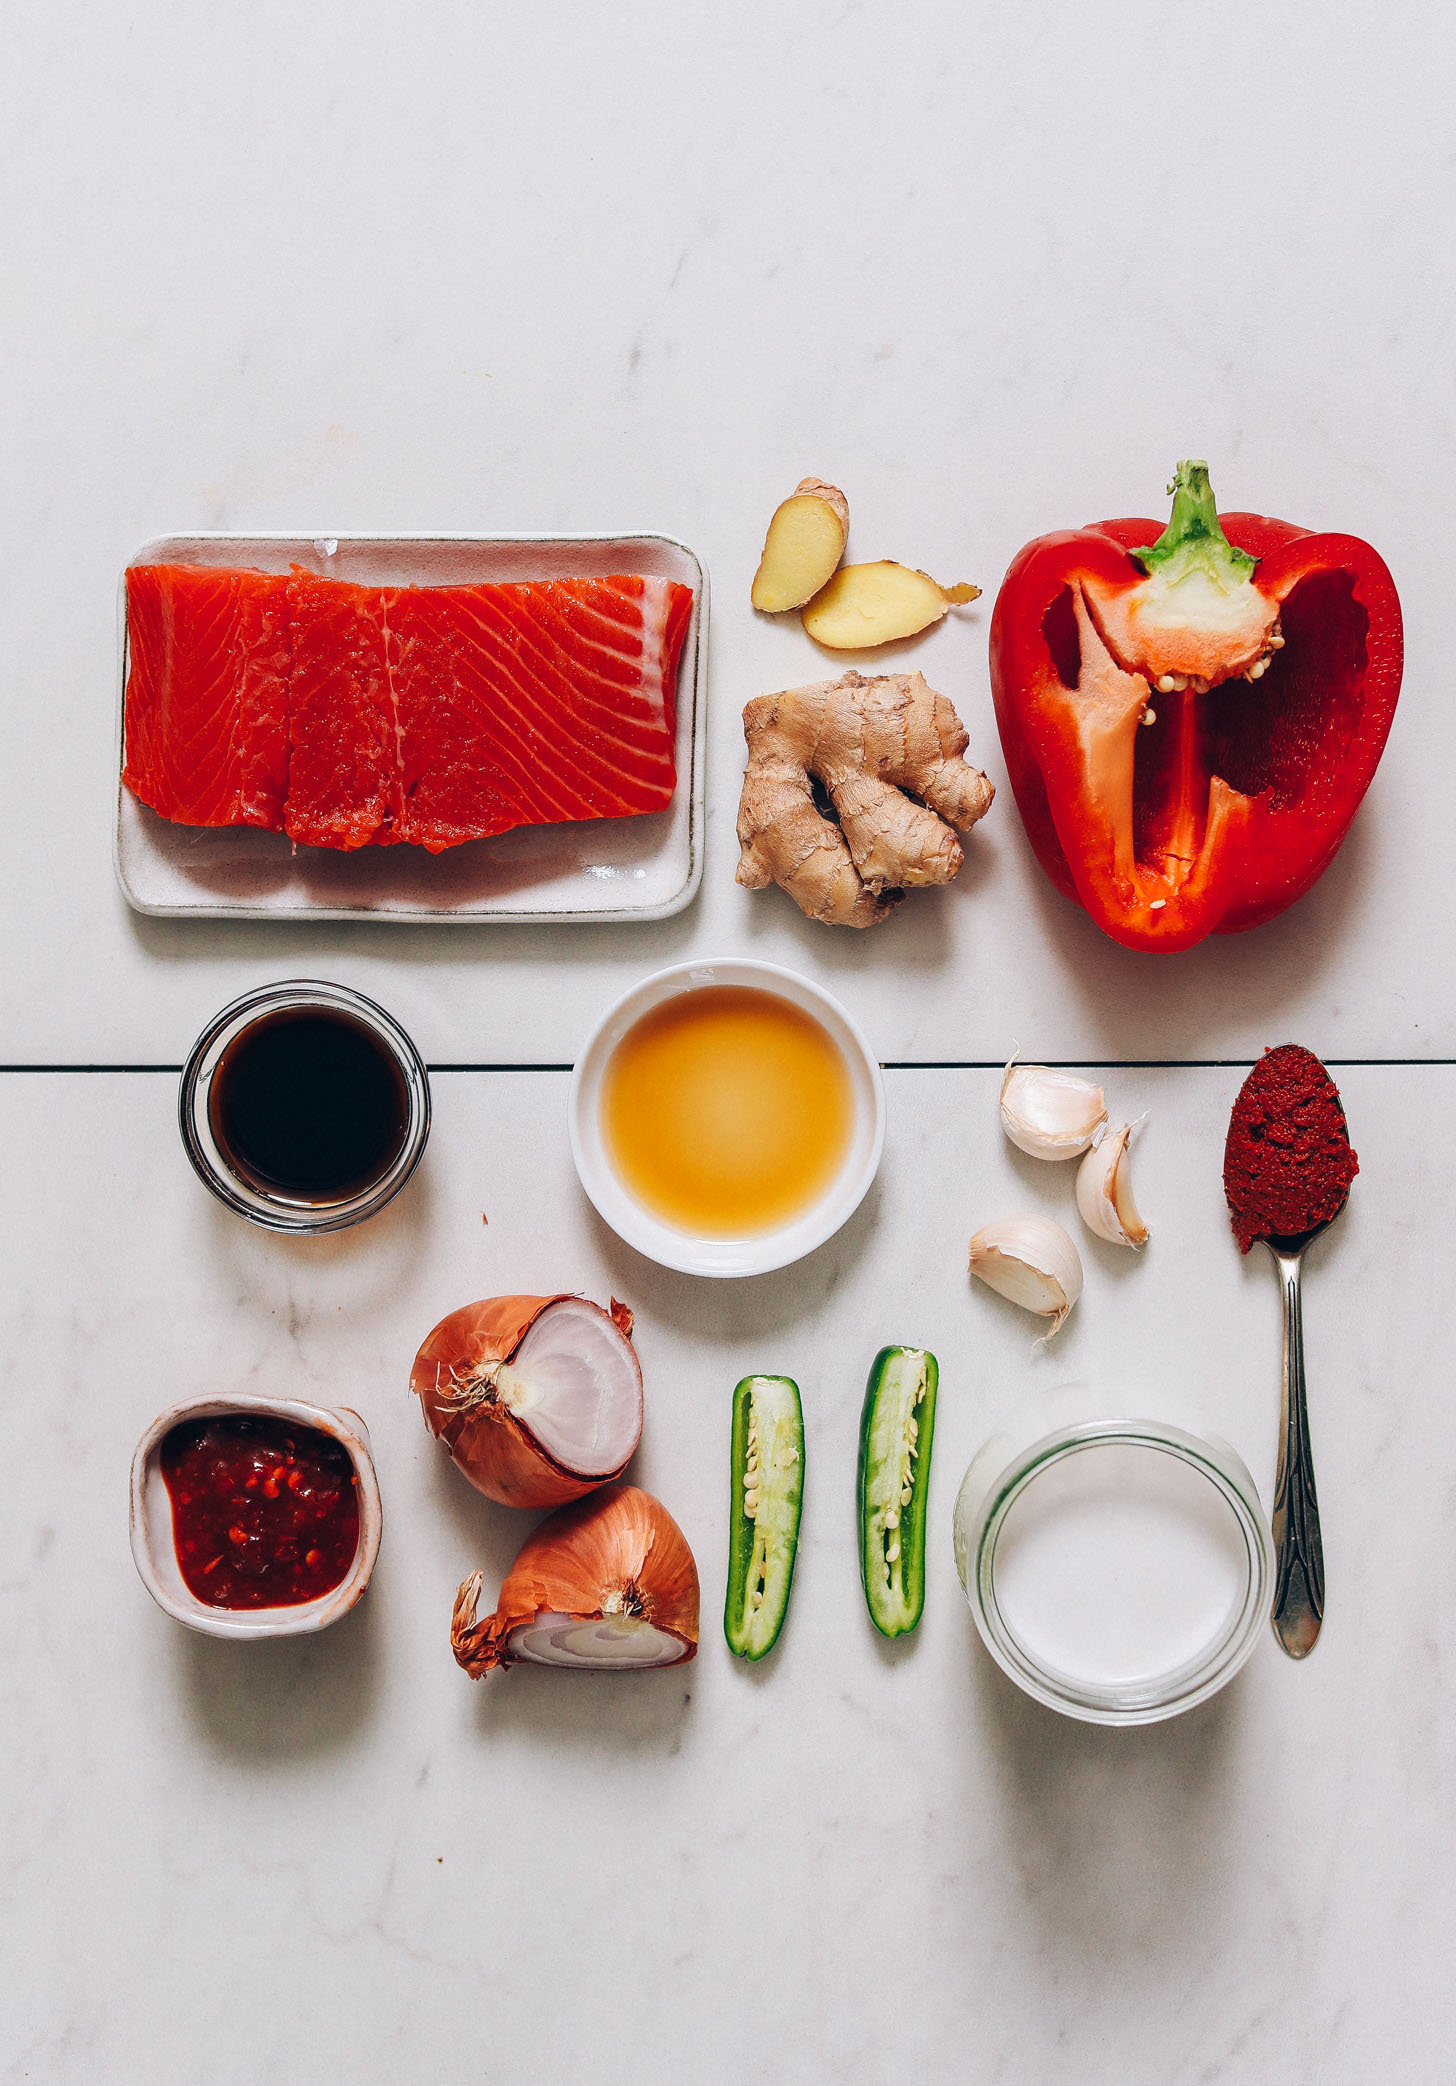 Salmon, ginger, red bell pepper, and other ingredients for making our Salmon Red Curry recipe